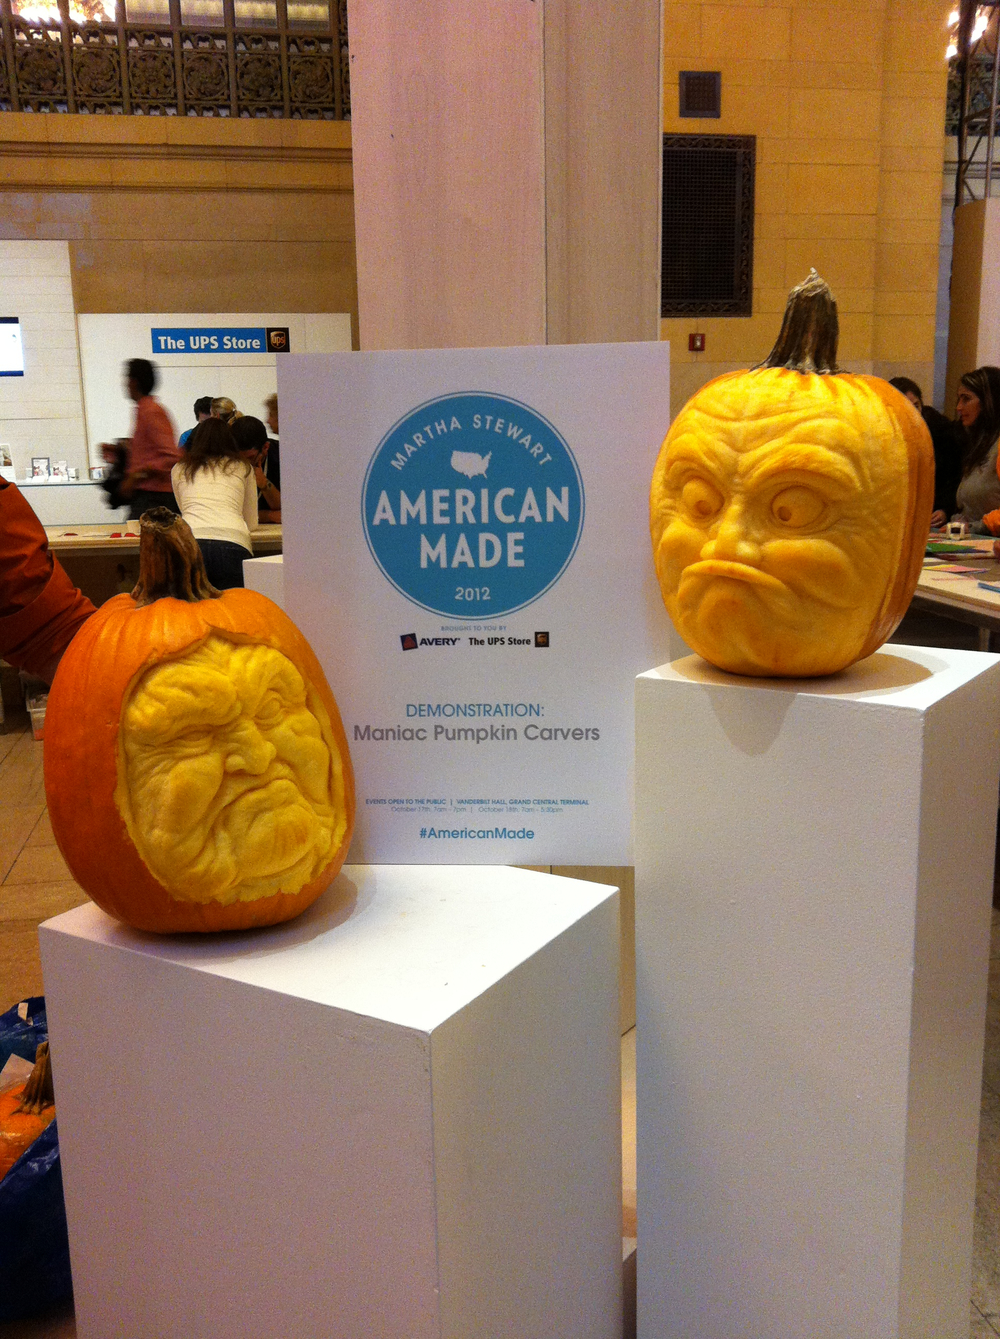 Maniac Pumpkin Carvers doing demos at Martha Stewarts American Made Festival in Grand Central Station, NYC.